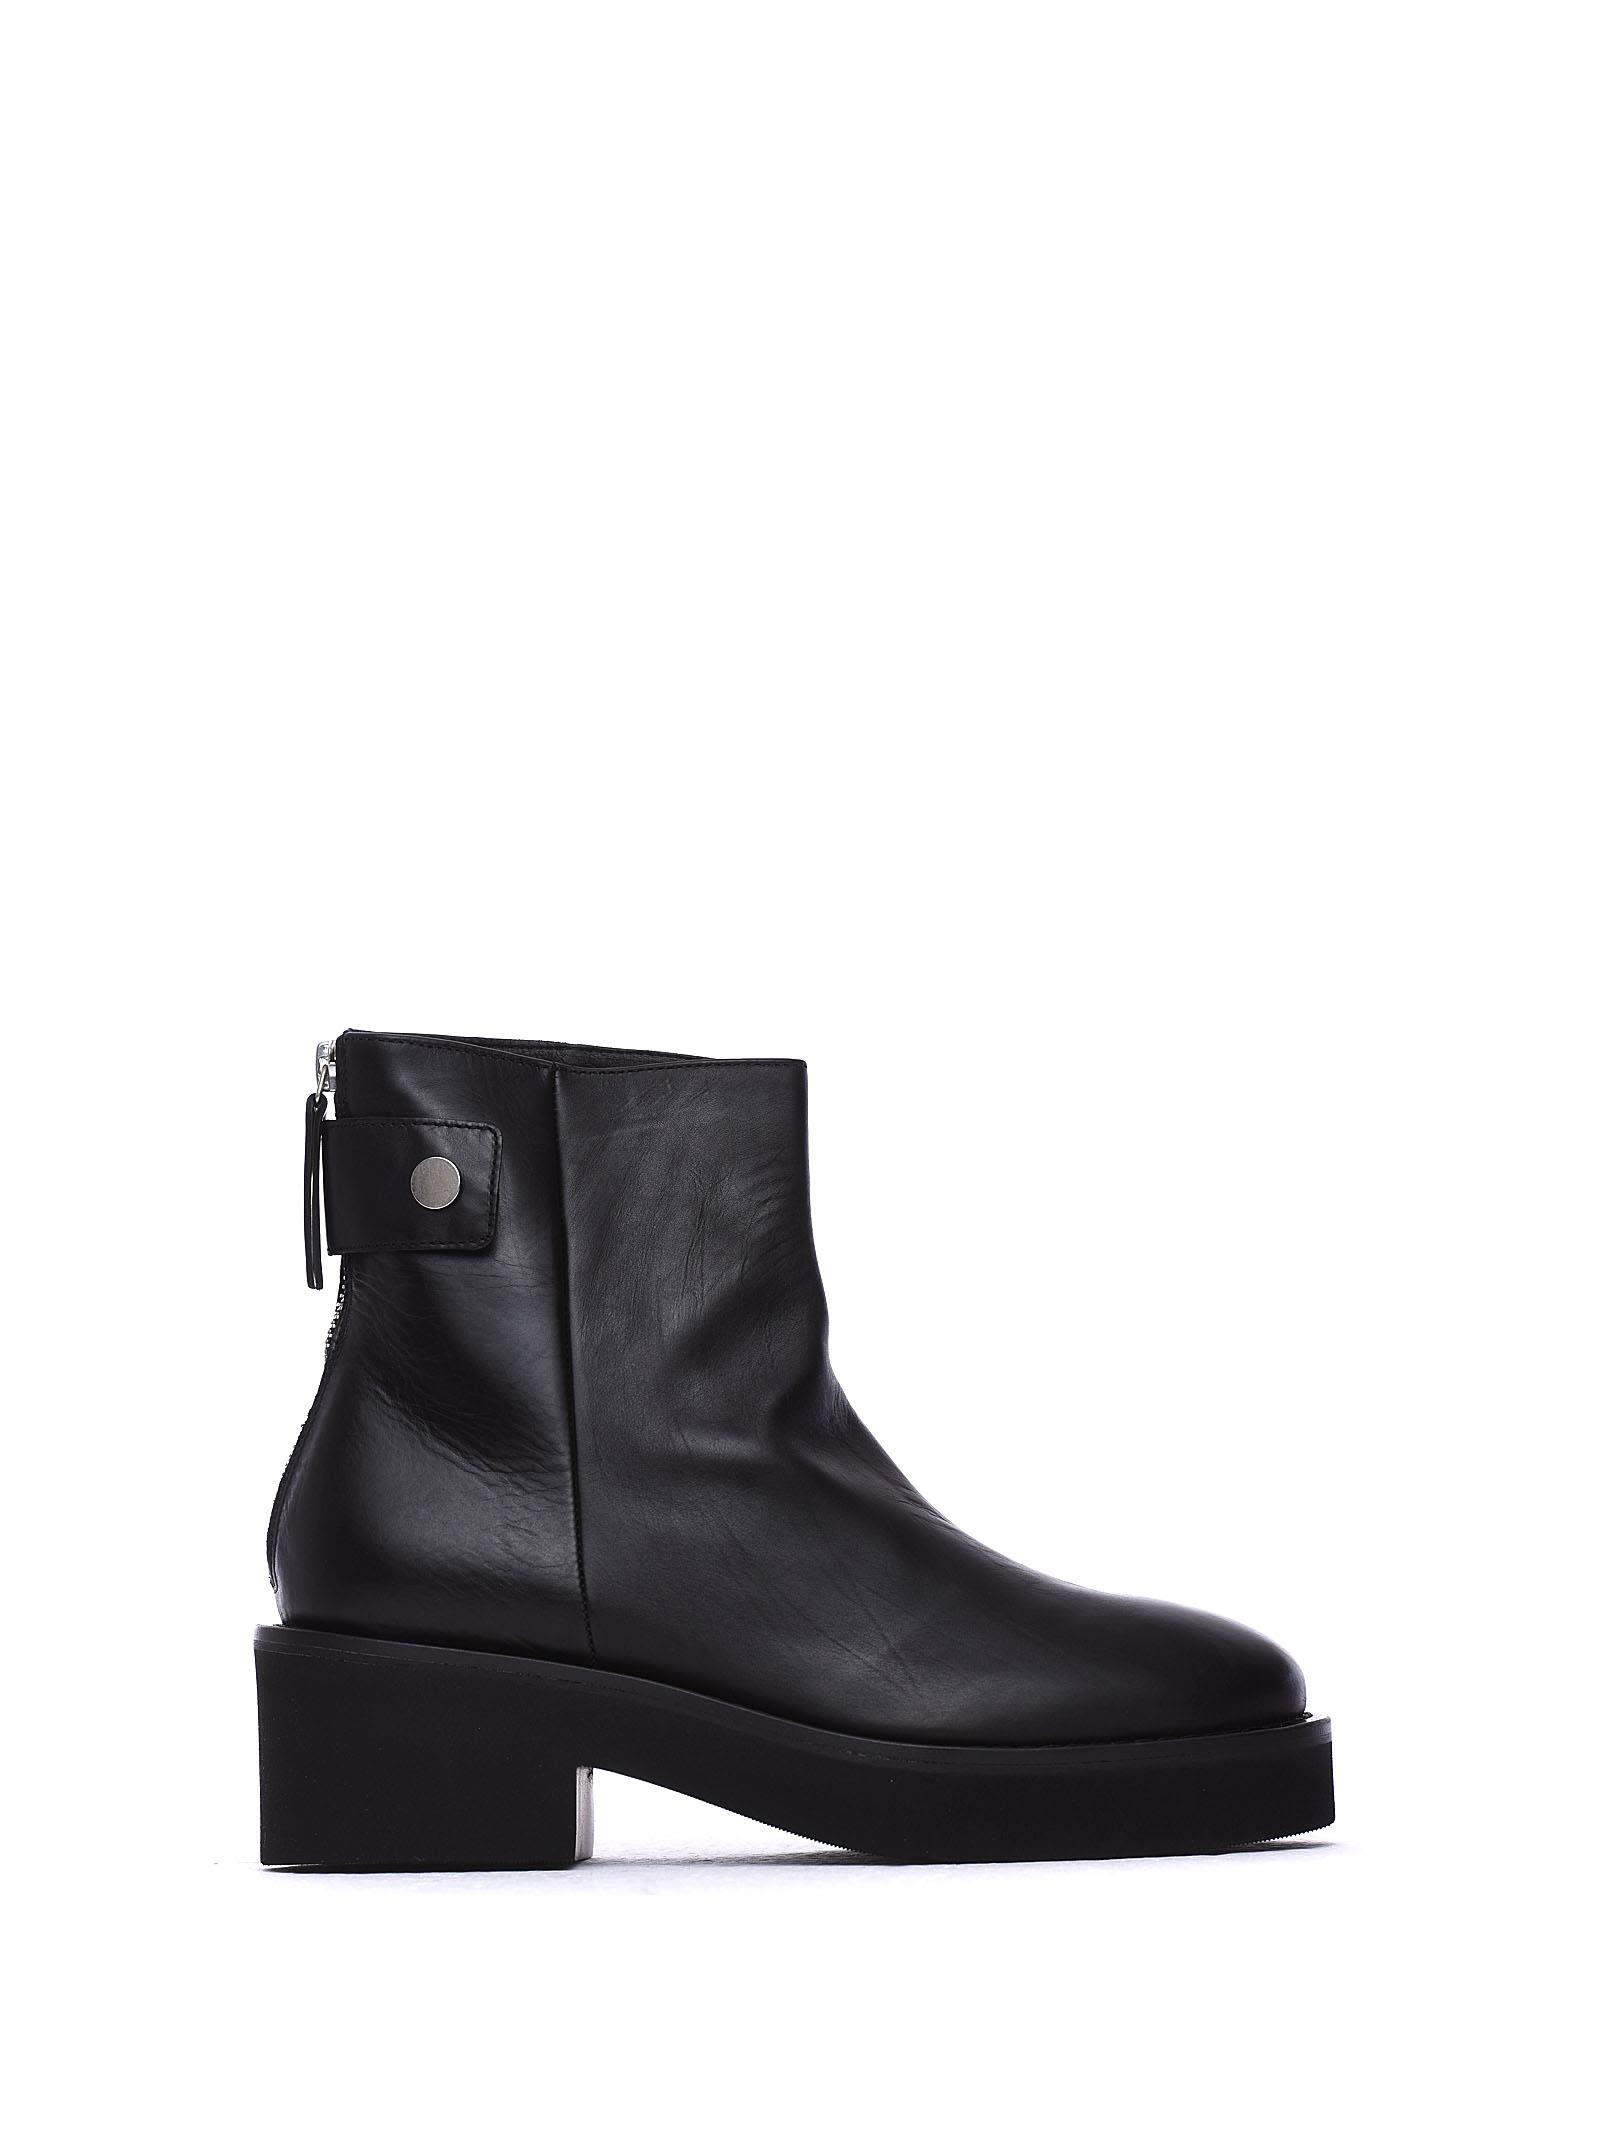 VIC MATIE Black Leather Heeled Ankle Boots With Press-Stud in Nero